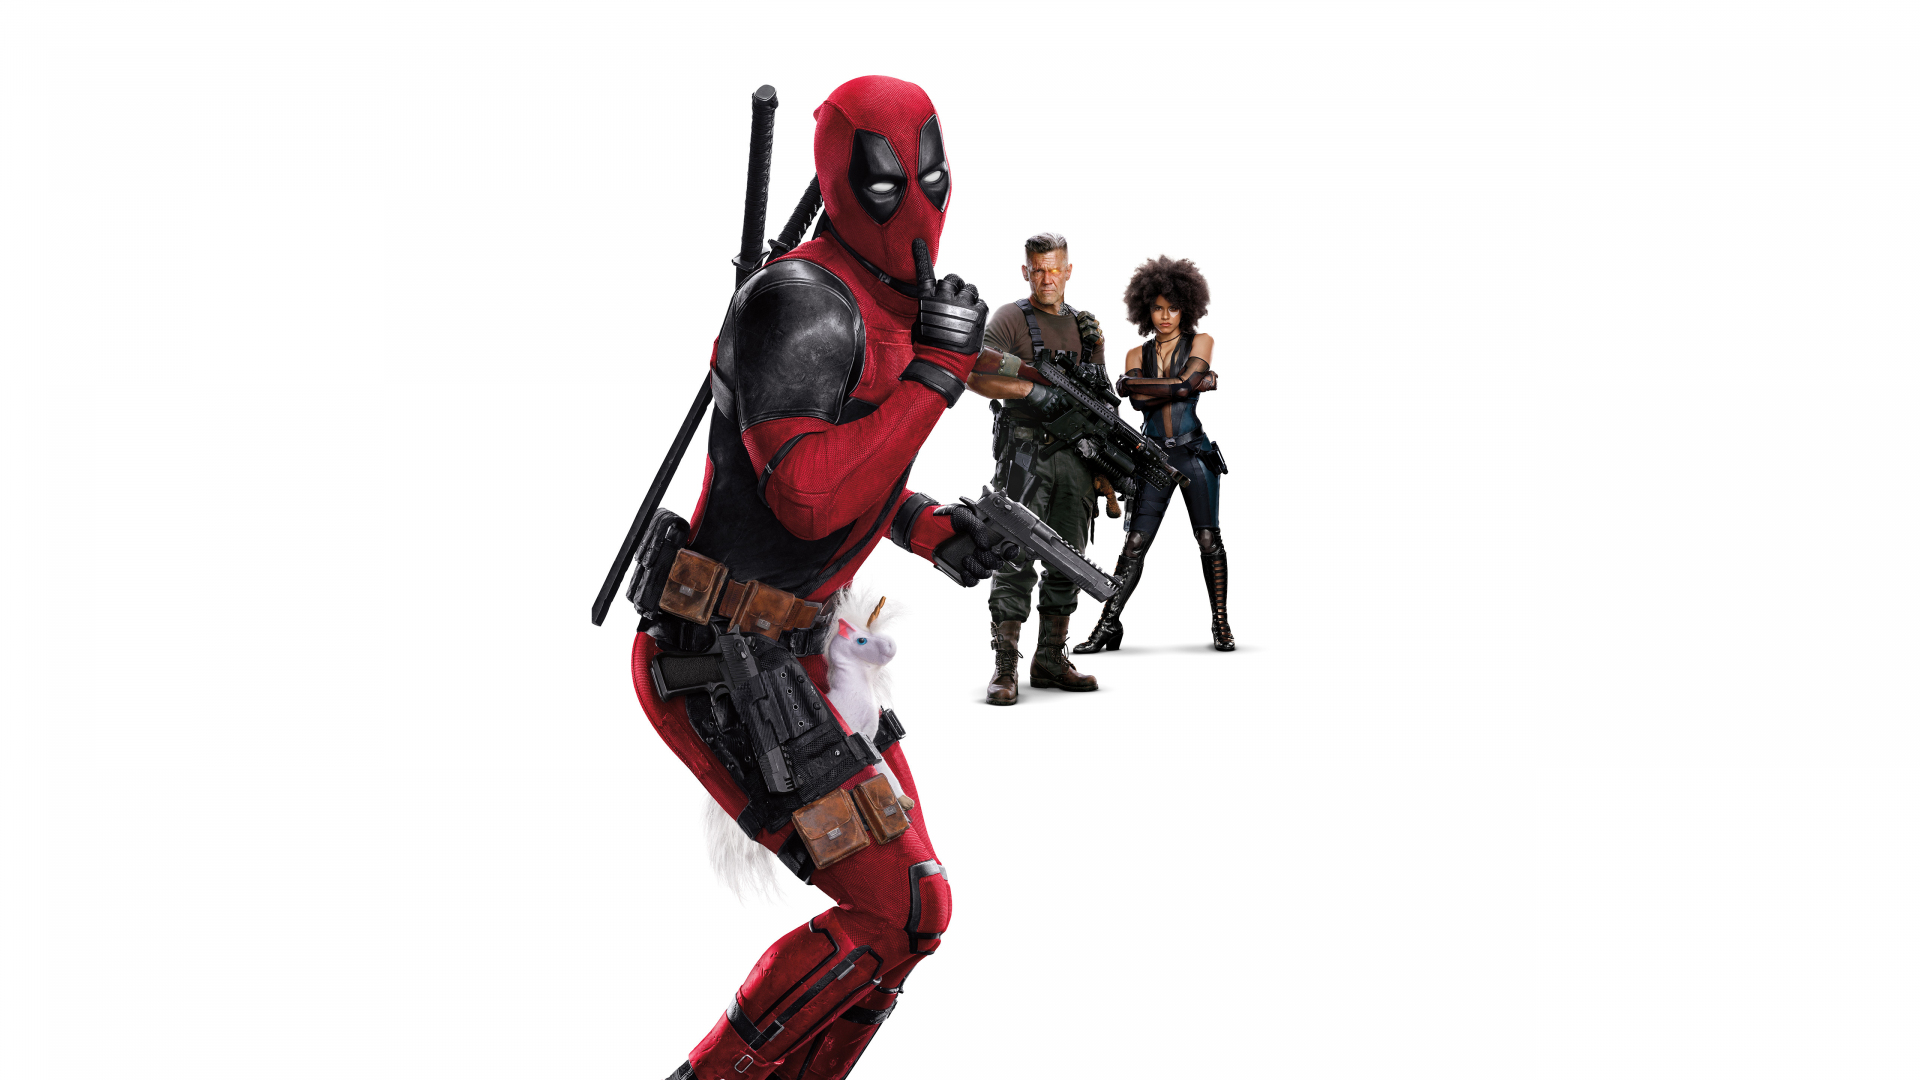 Download 1920x1080 Wallpaper Deadpool 2 Funny Pose Deadpool Movie Full Hd Hdtv Fhd 1080p 1920x1080 Hd Image Background 7072